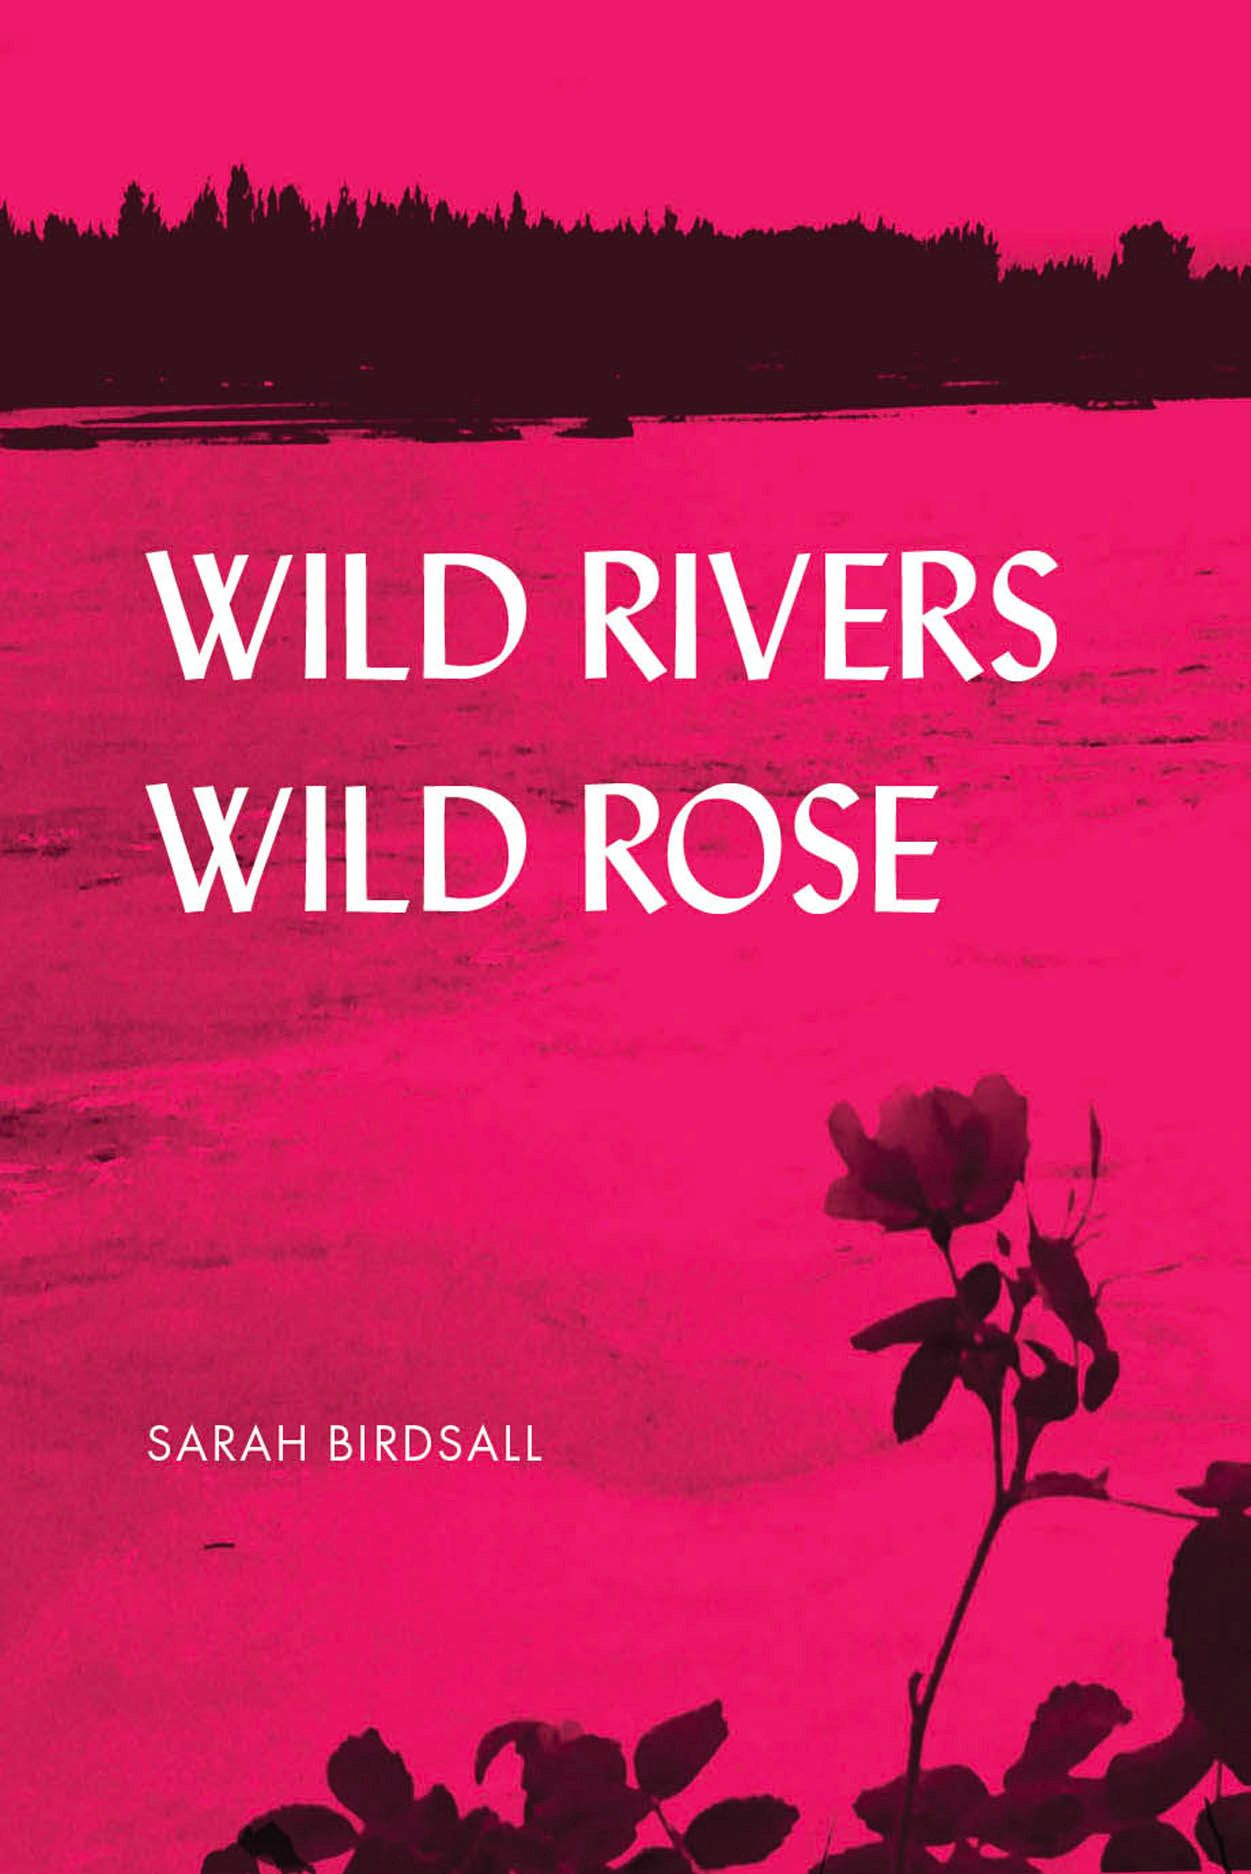 Wild Rivers, Wild Rose